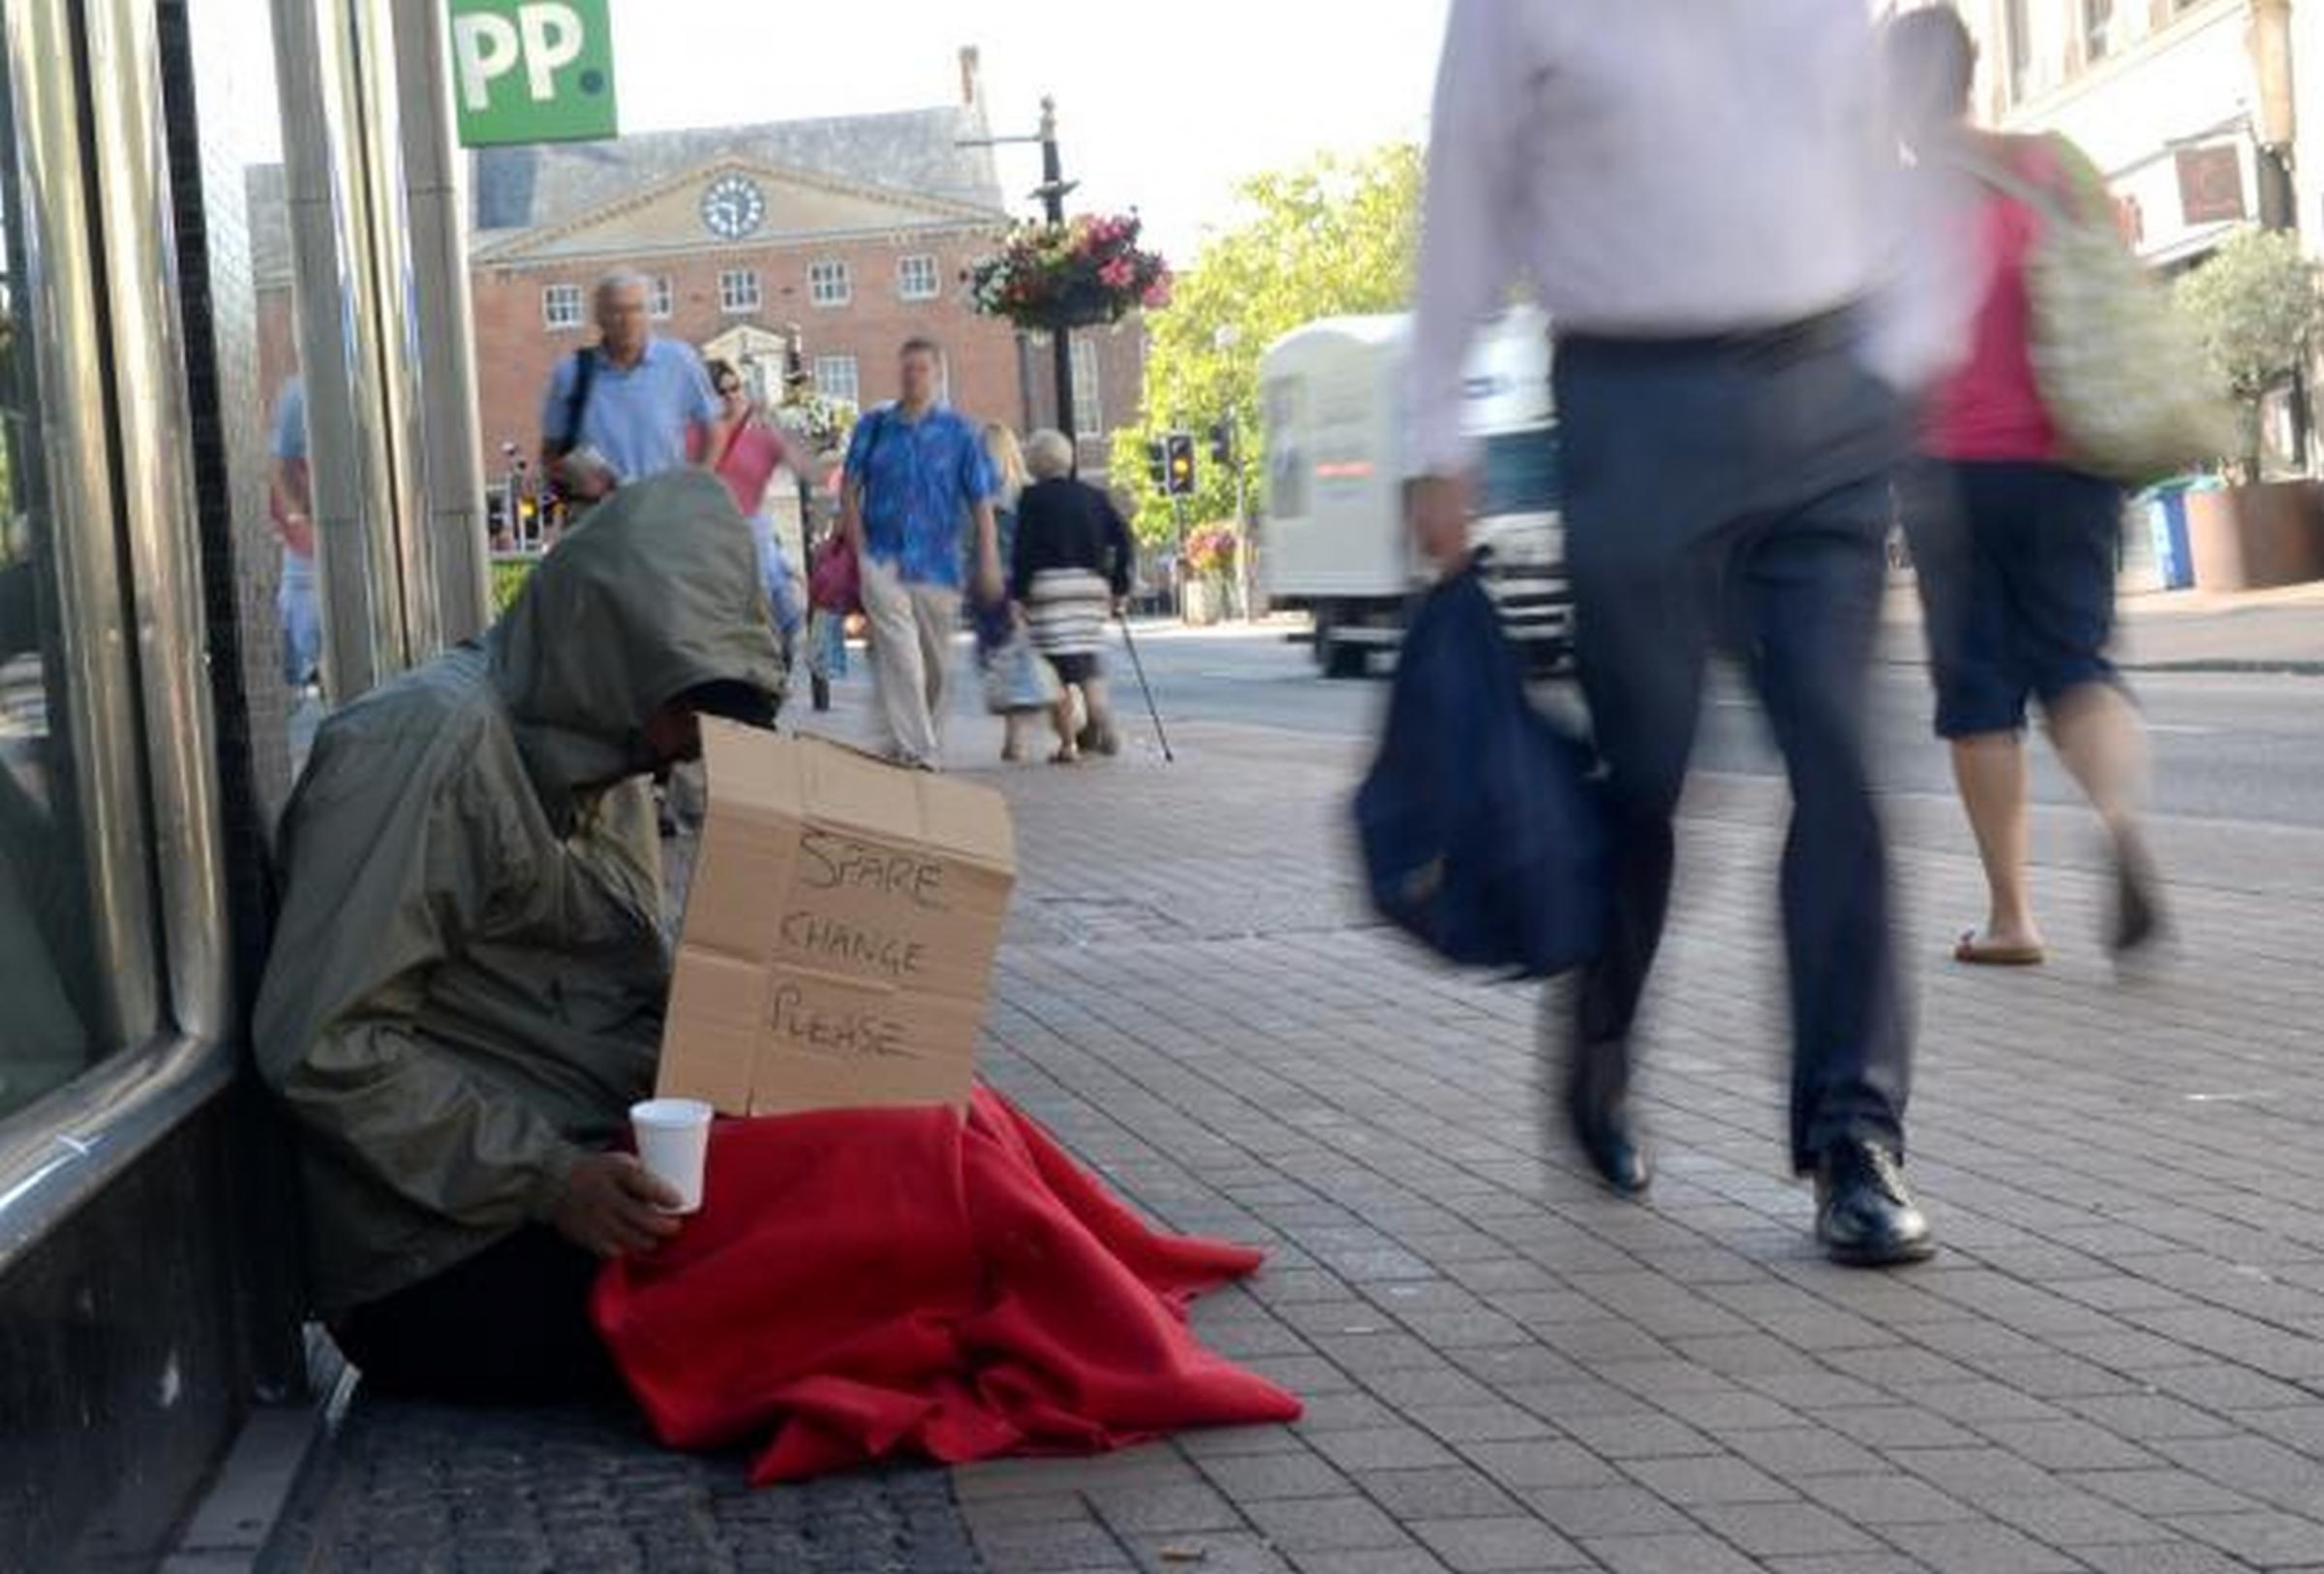 RISING NUMBERS: Taunton Deane has the highest rate of rough sleepers in Somerset